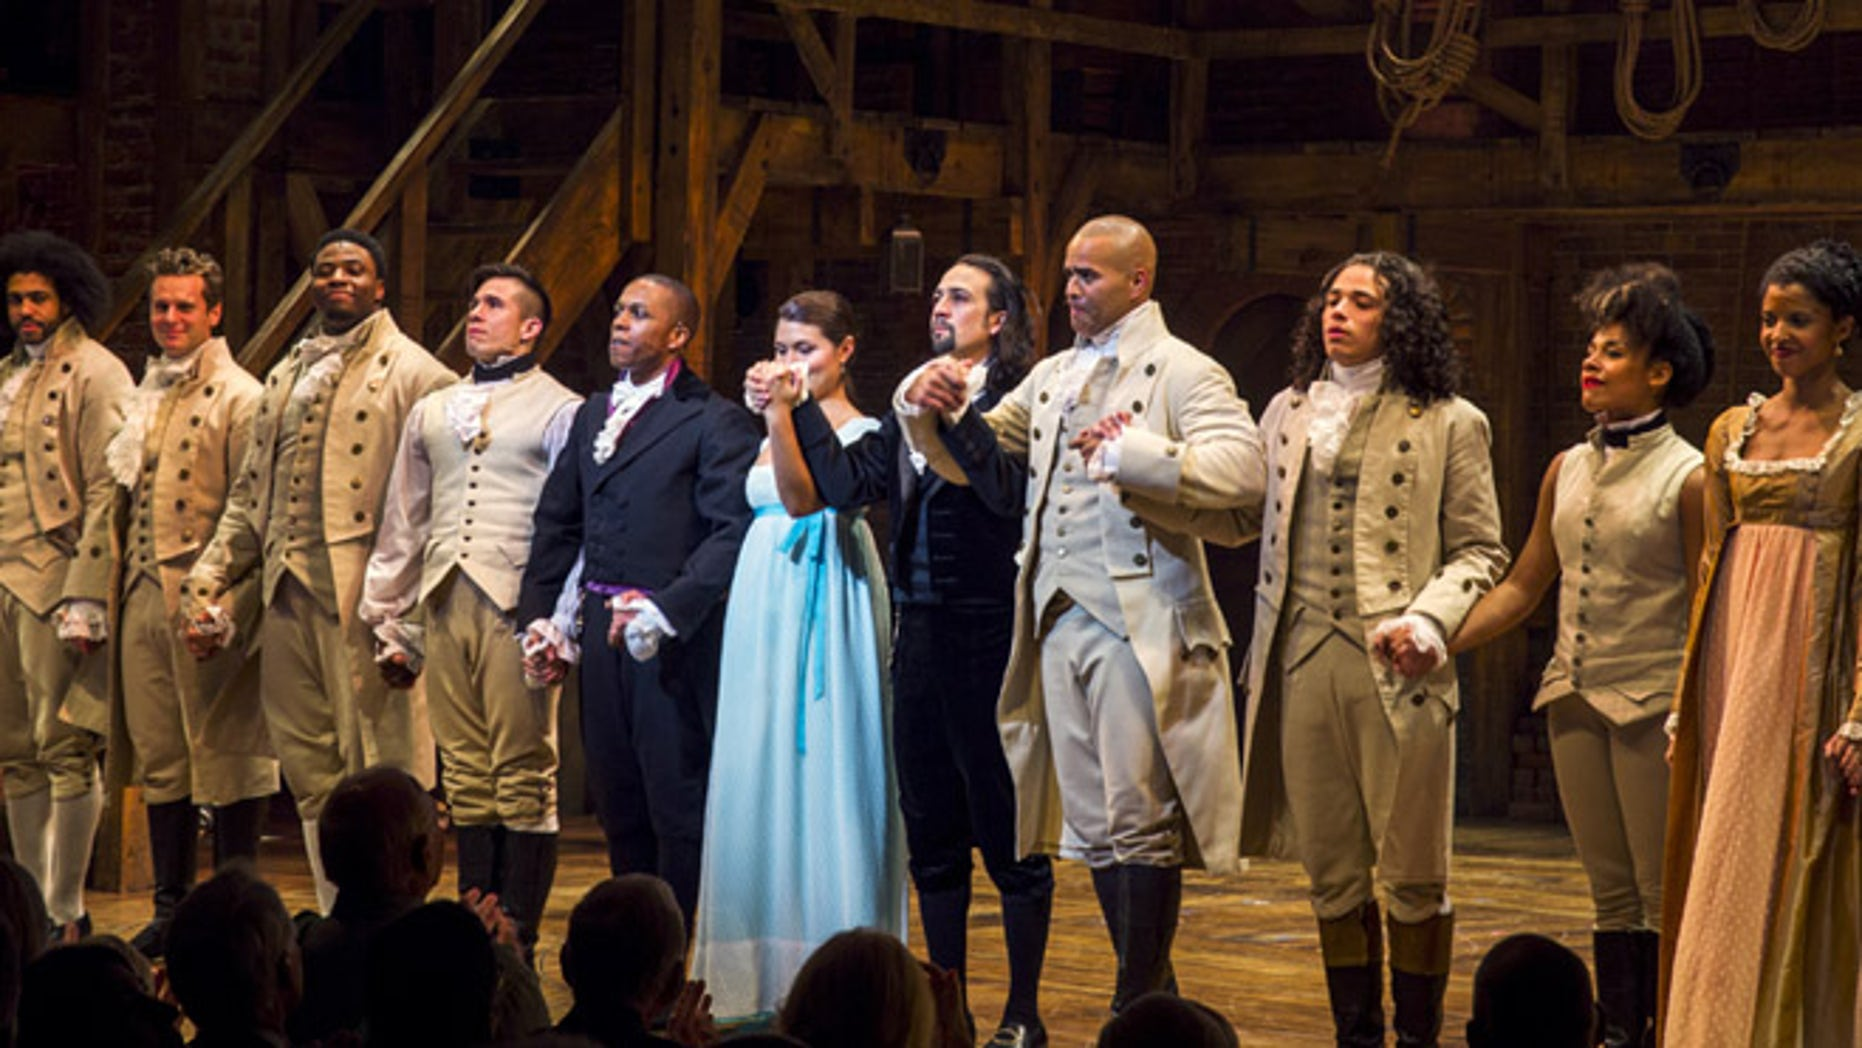 August 6, 2015: Lin-Manuel Miranda (5th right), actor and creator of the of the play 'Hamilton' bows to the audience after opening night of the play on Broadway in New York.